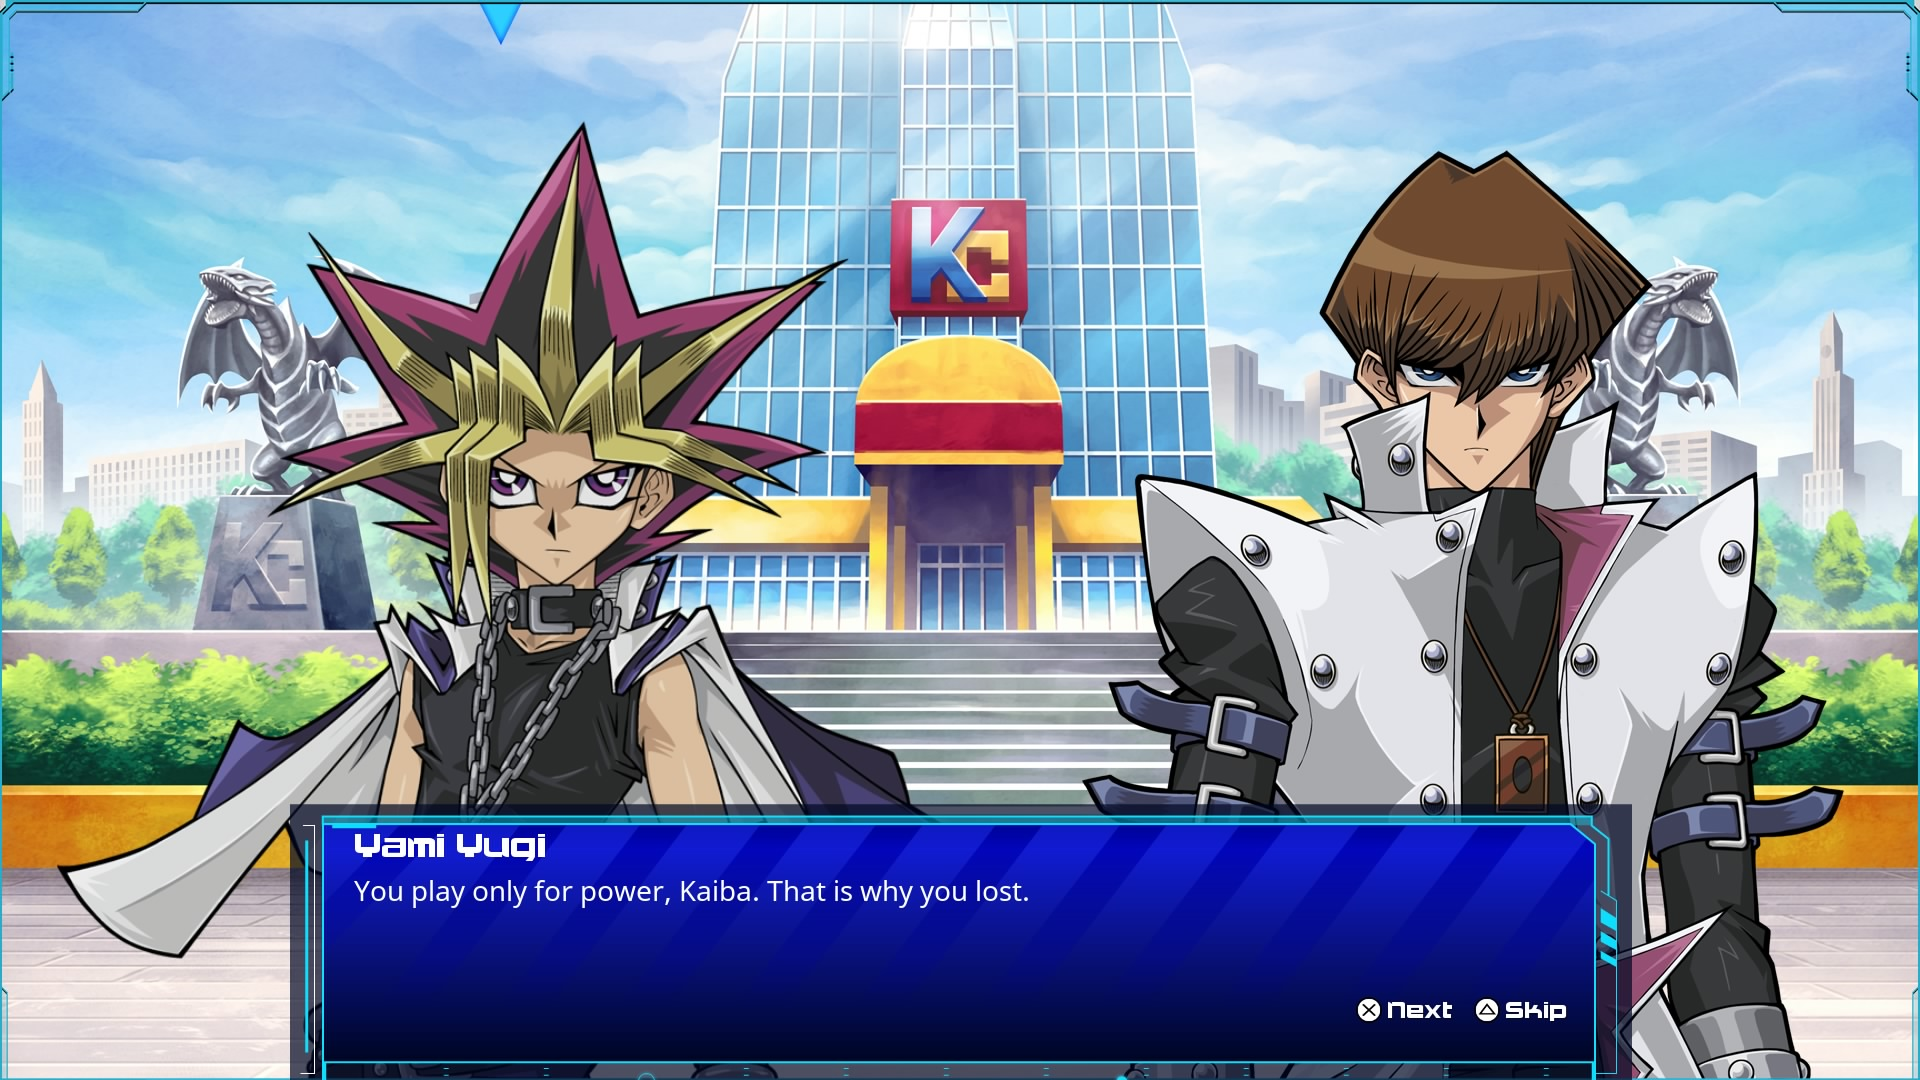 yu gi oh legacy of the duelist releasing tomorrow on ps4 and xbox one